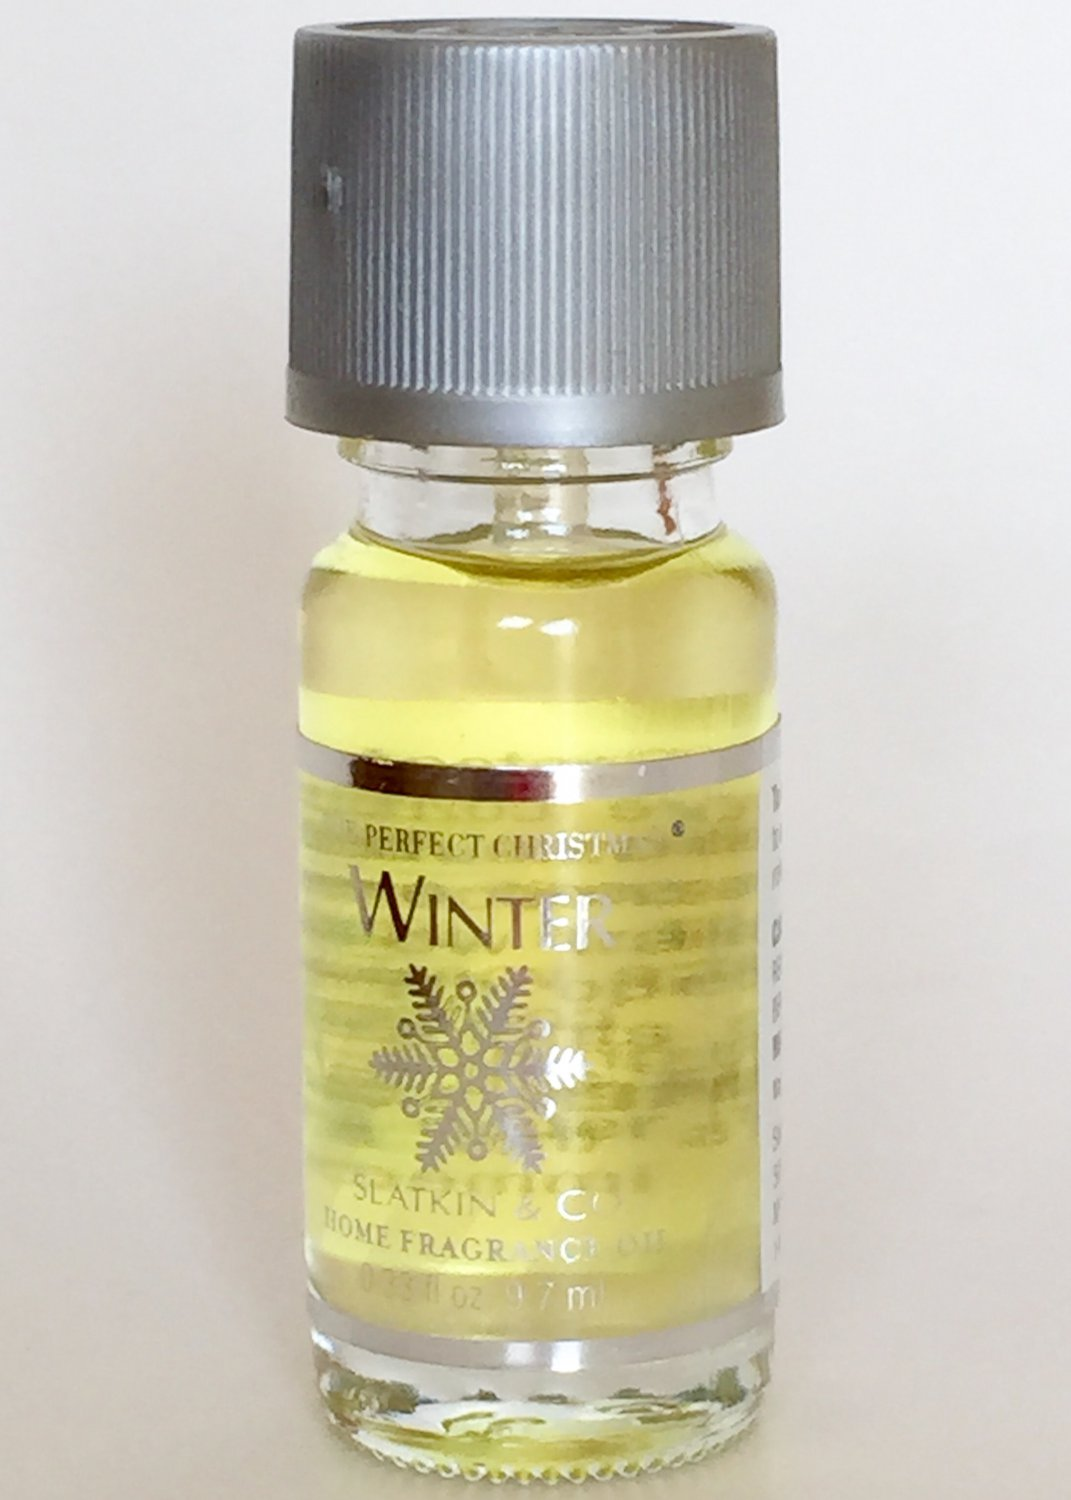 Slatkin Winter Home Fragrance Oil The Perfect Christmas